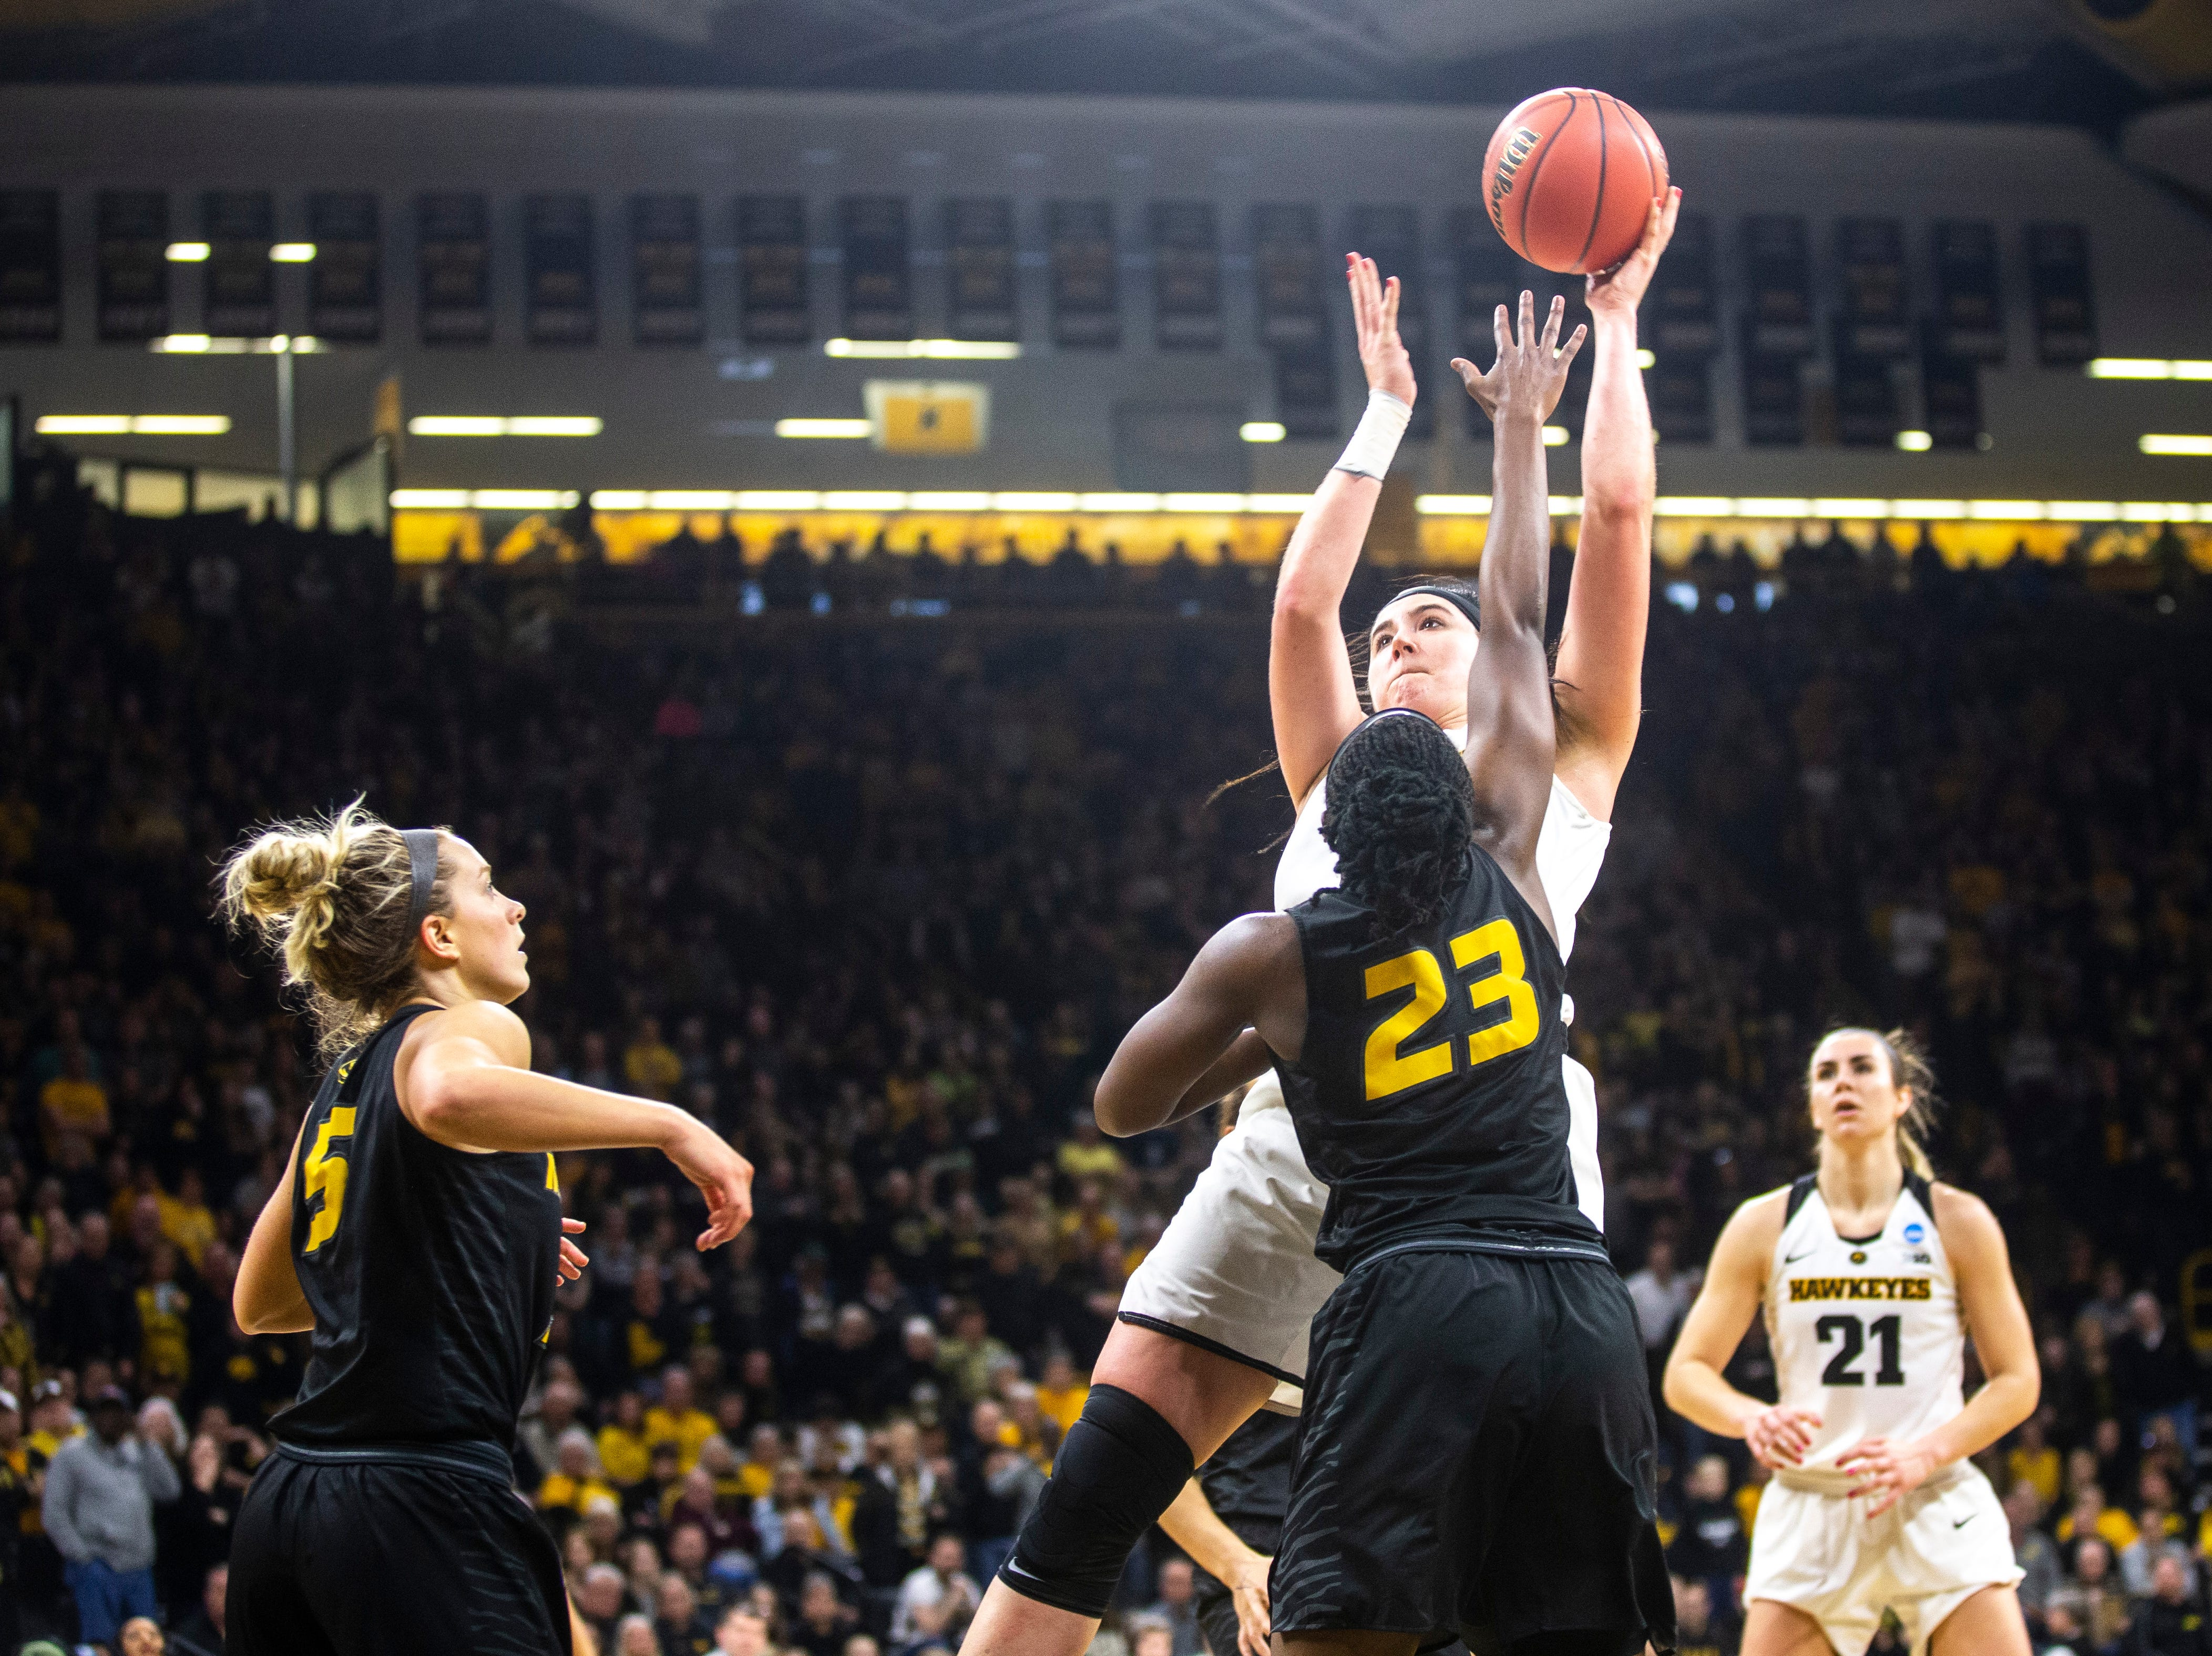 Iowa center Megan Gustafson shoots a basket against Missouri guard Amber Smith (23) while Missouri guard Lauren Aldridge (5) defends during a NCAA women's basketball tournament second-round game, Sunday, March 24, 2019, at Carver-Hawkeye Arena in Iowa City, Iowa.